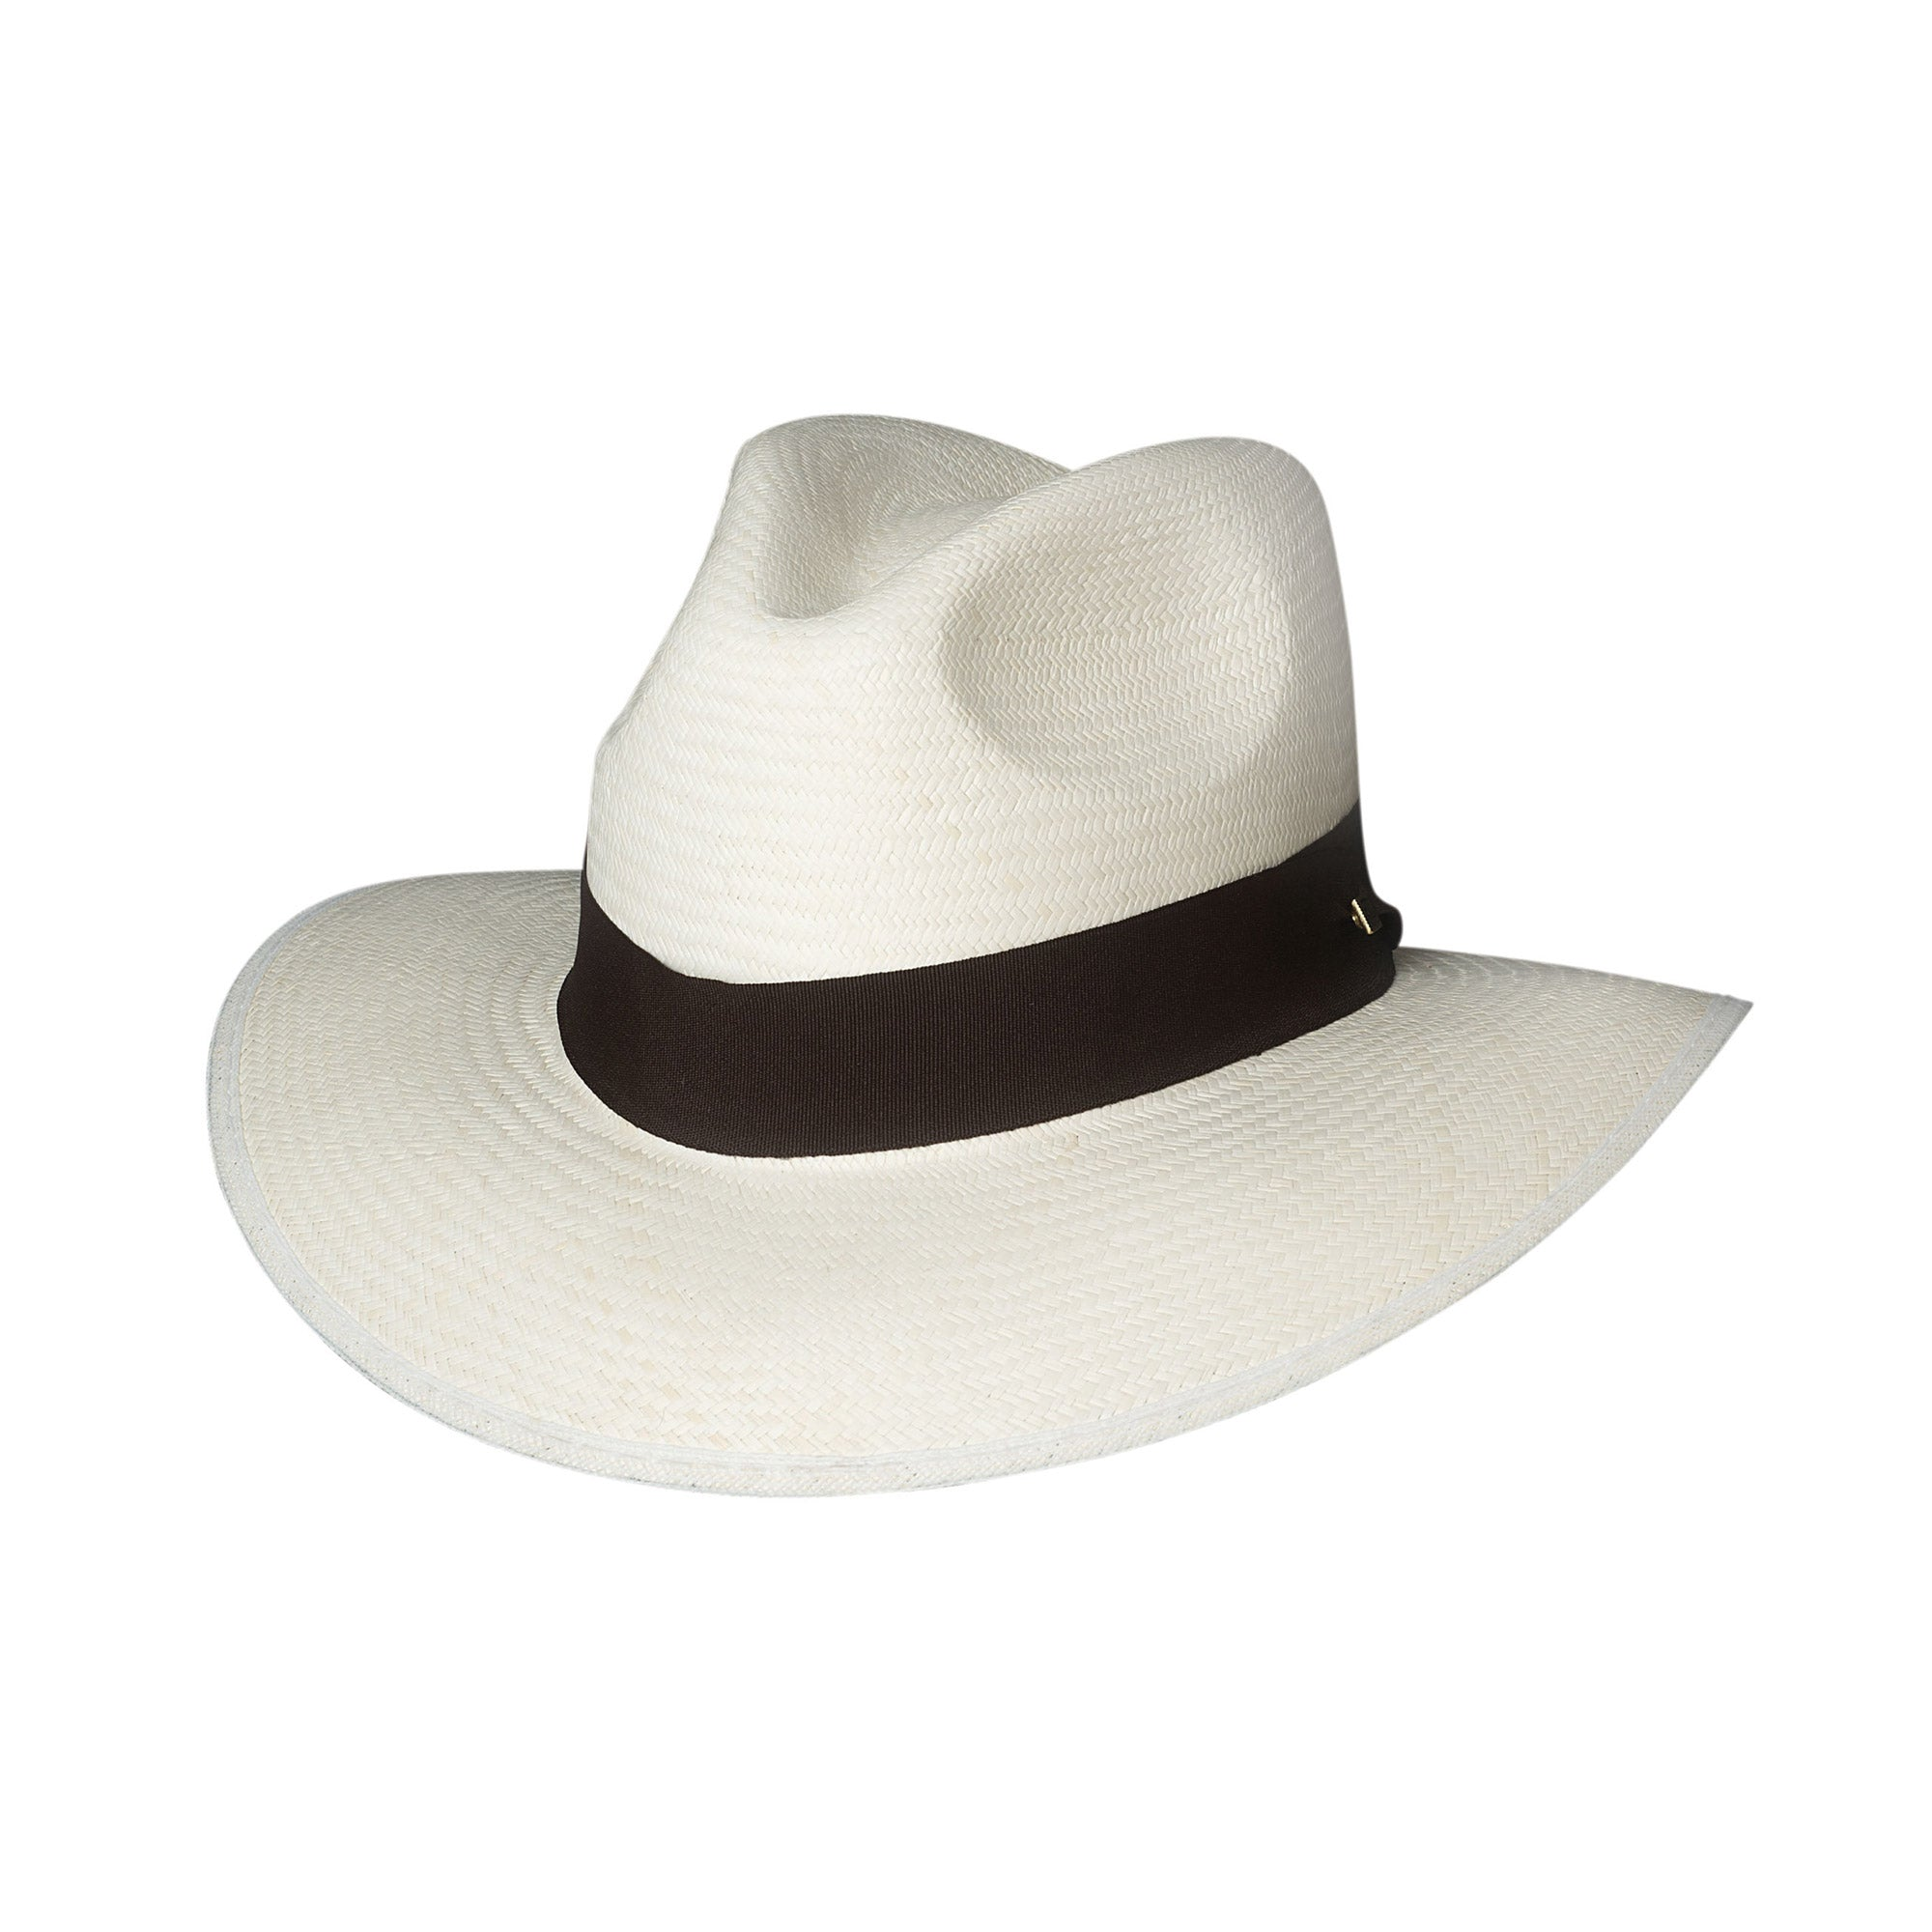 ecd5713d1f2 Bullhide Burlington Genuine Panama Straw Hat Item BH-2981